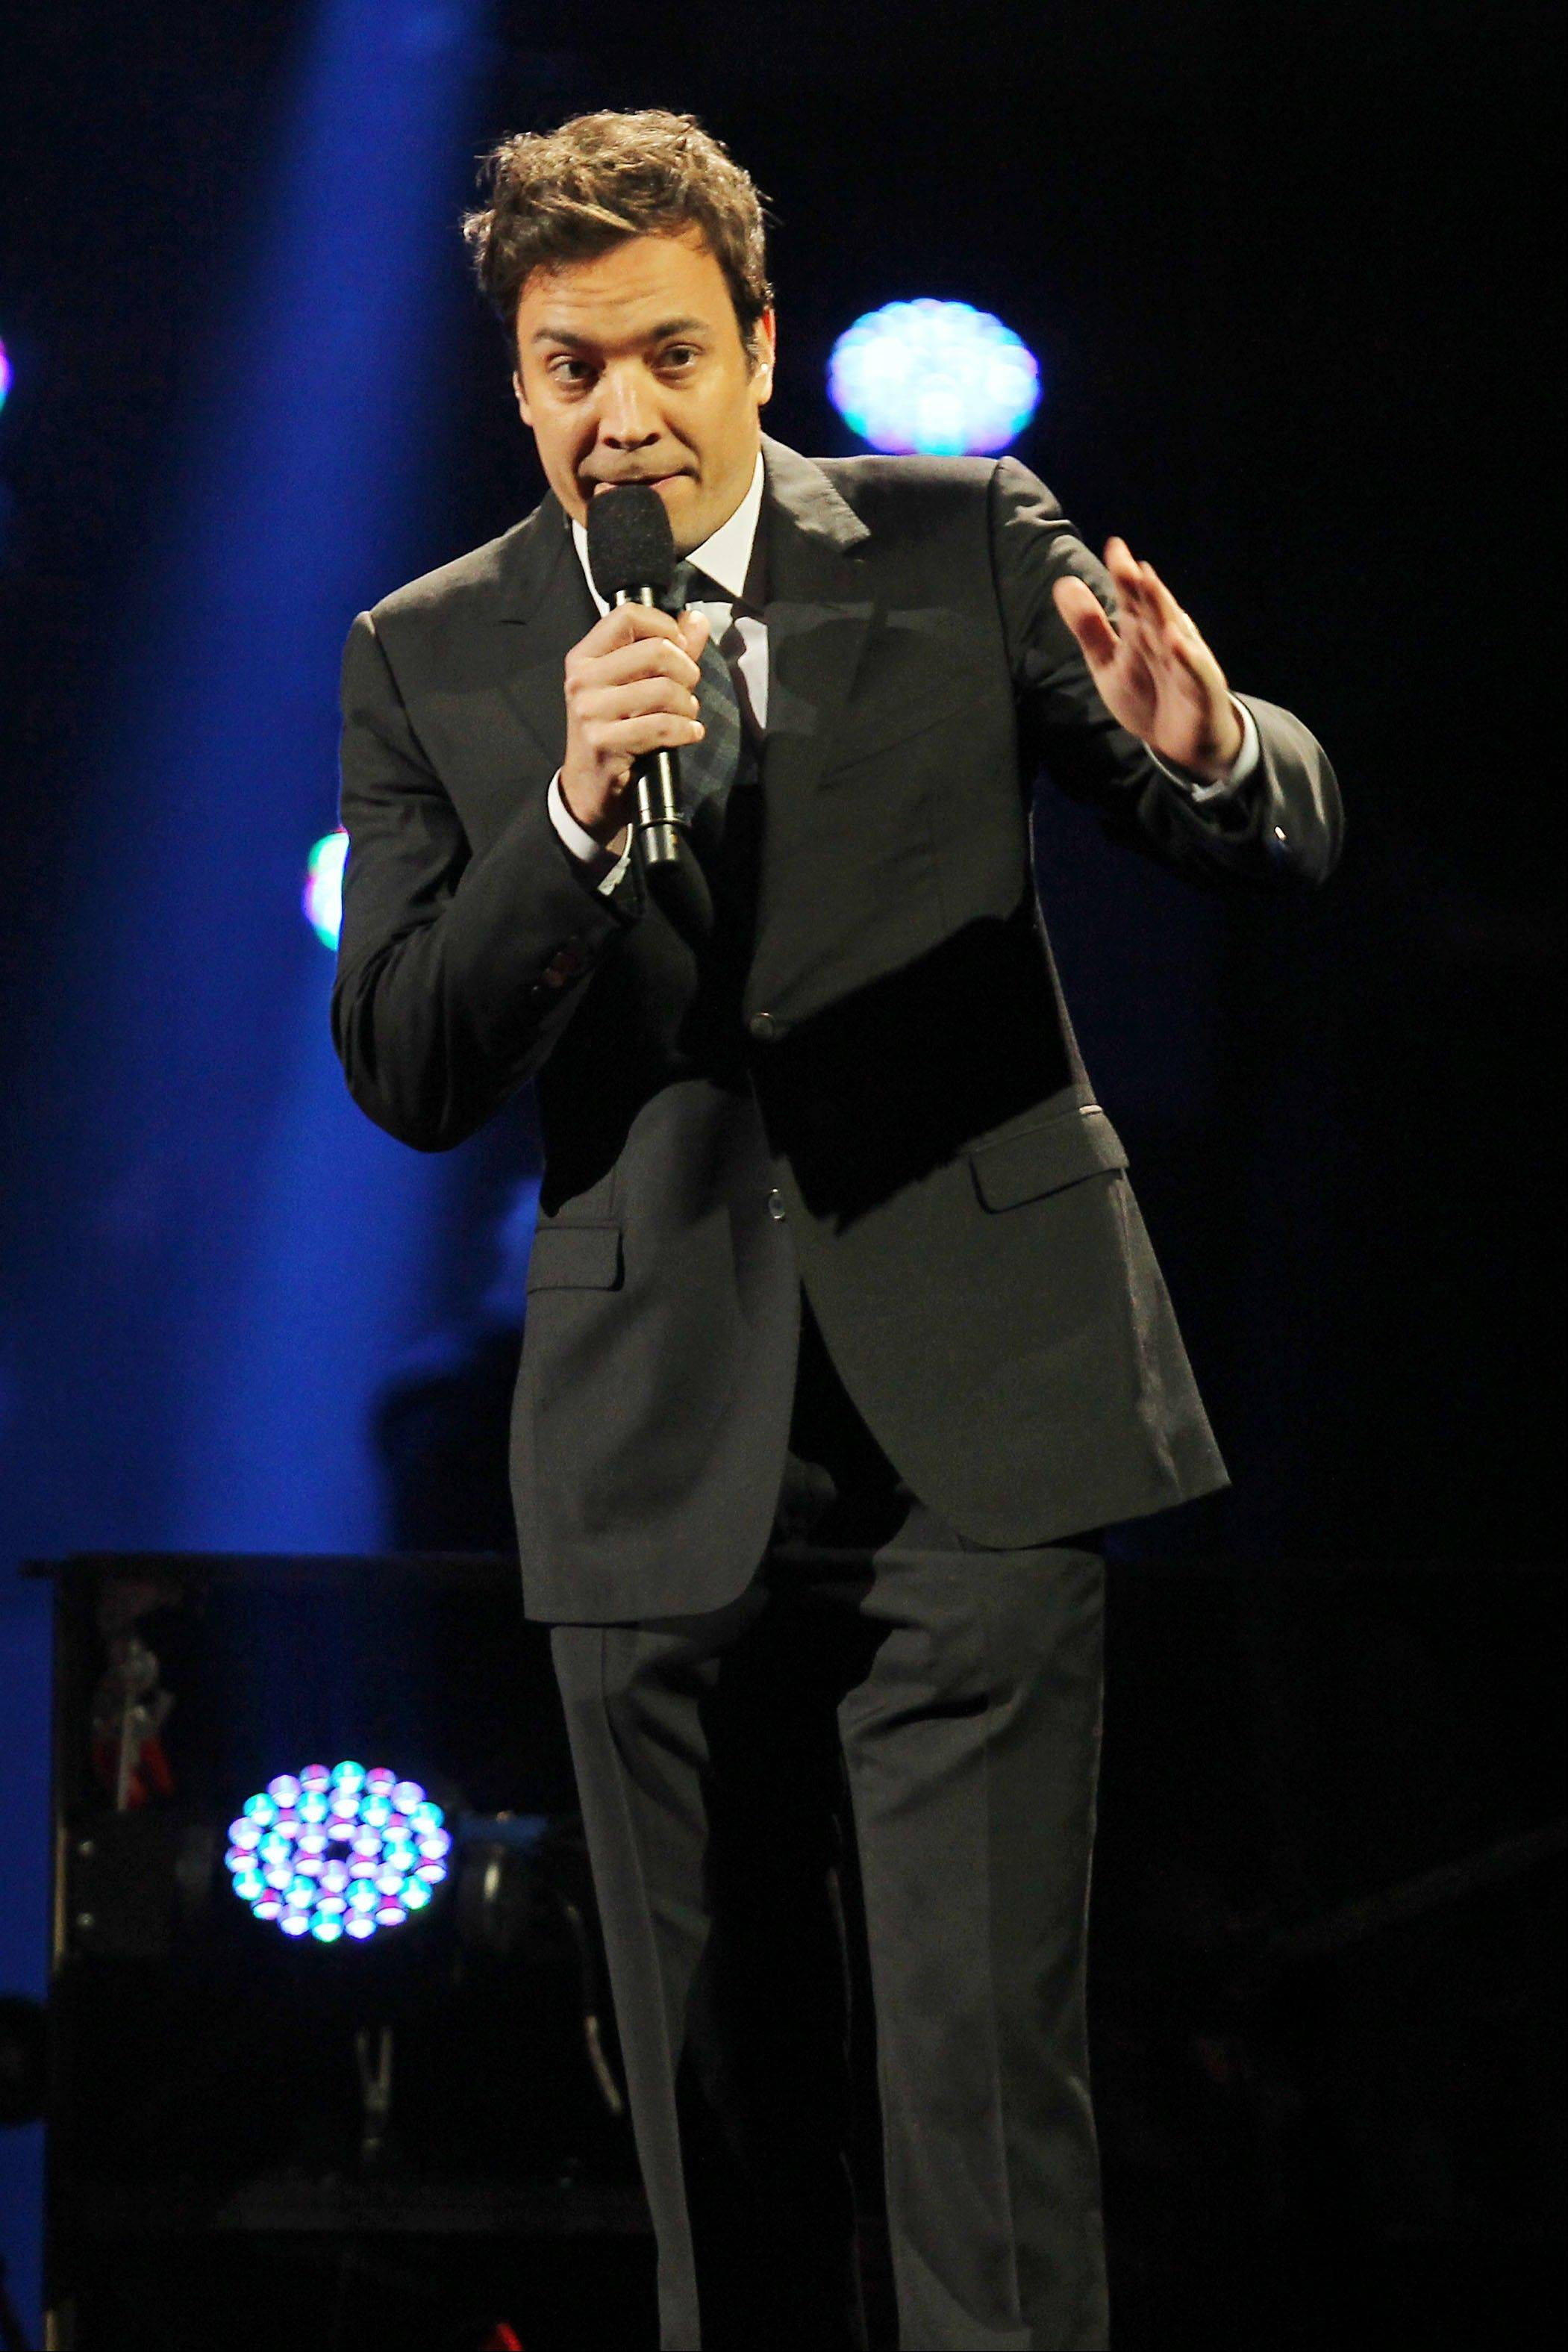 Jimmy Fallon at the 12-12-12 The Concert for Sandy Relief at Madison Square Garden in New York.